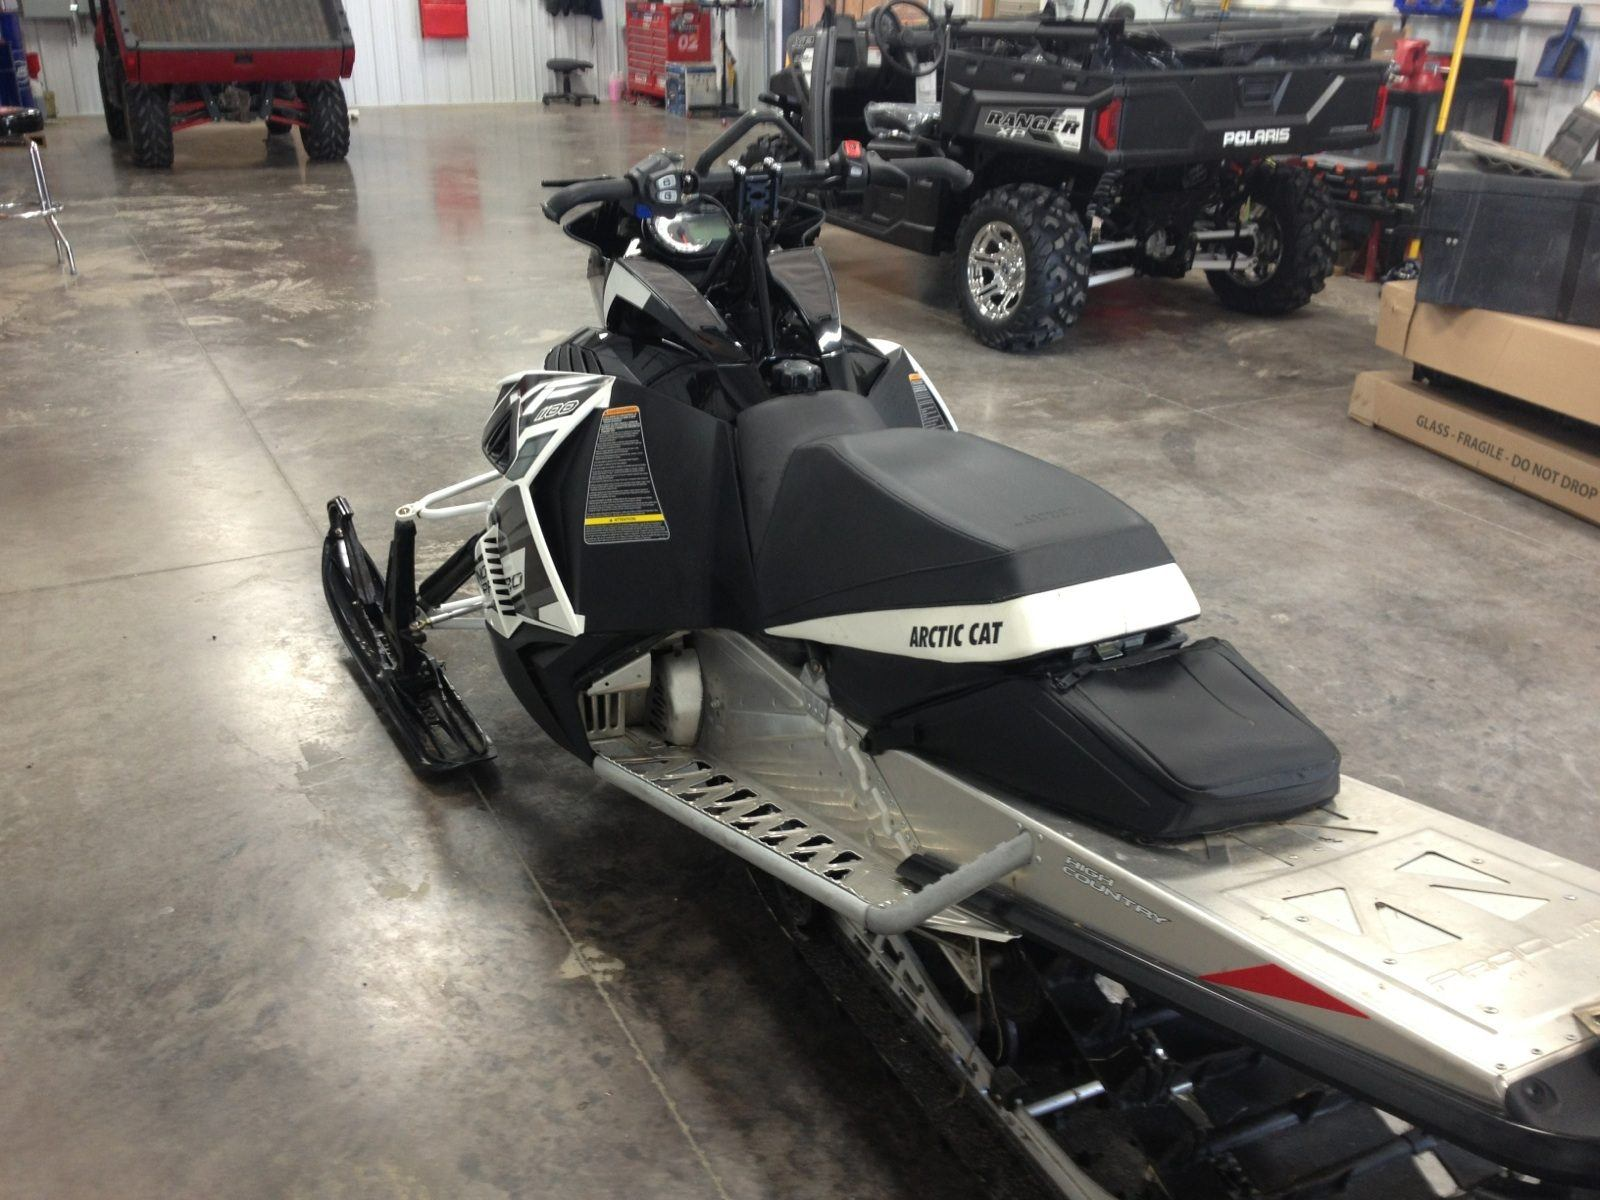 2013 Arctic Cat XF 1100 Turbo Sno Pro High Country Limited 3